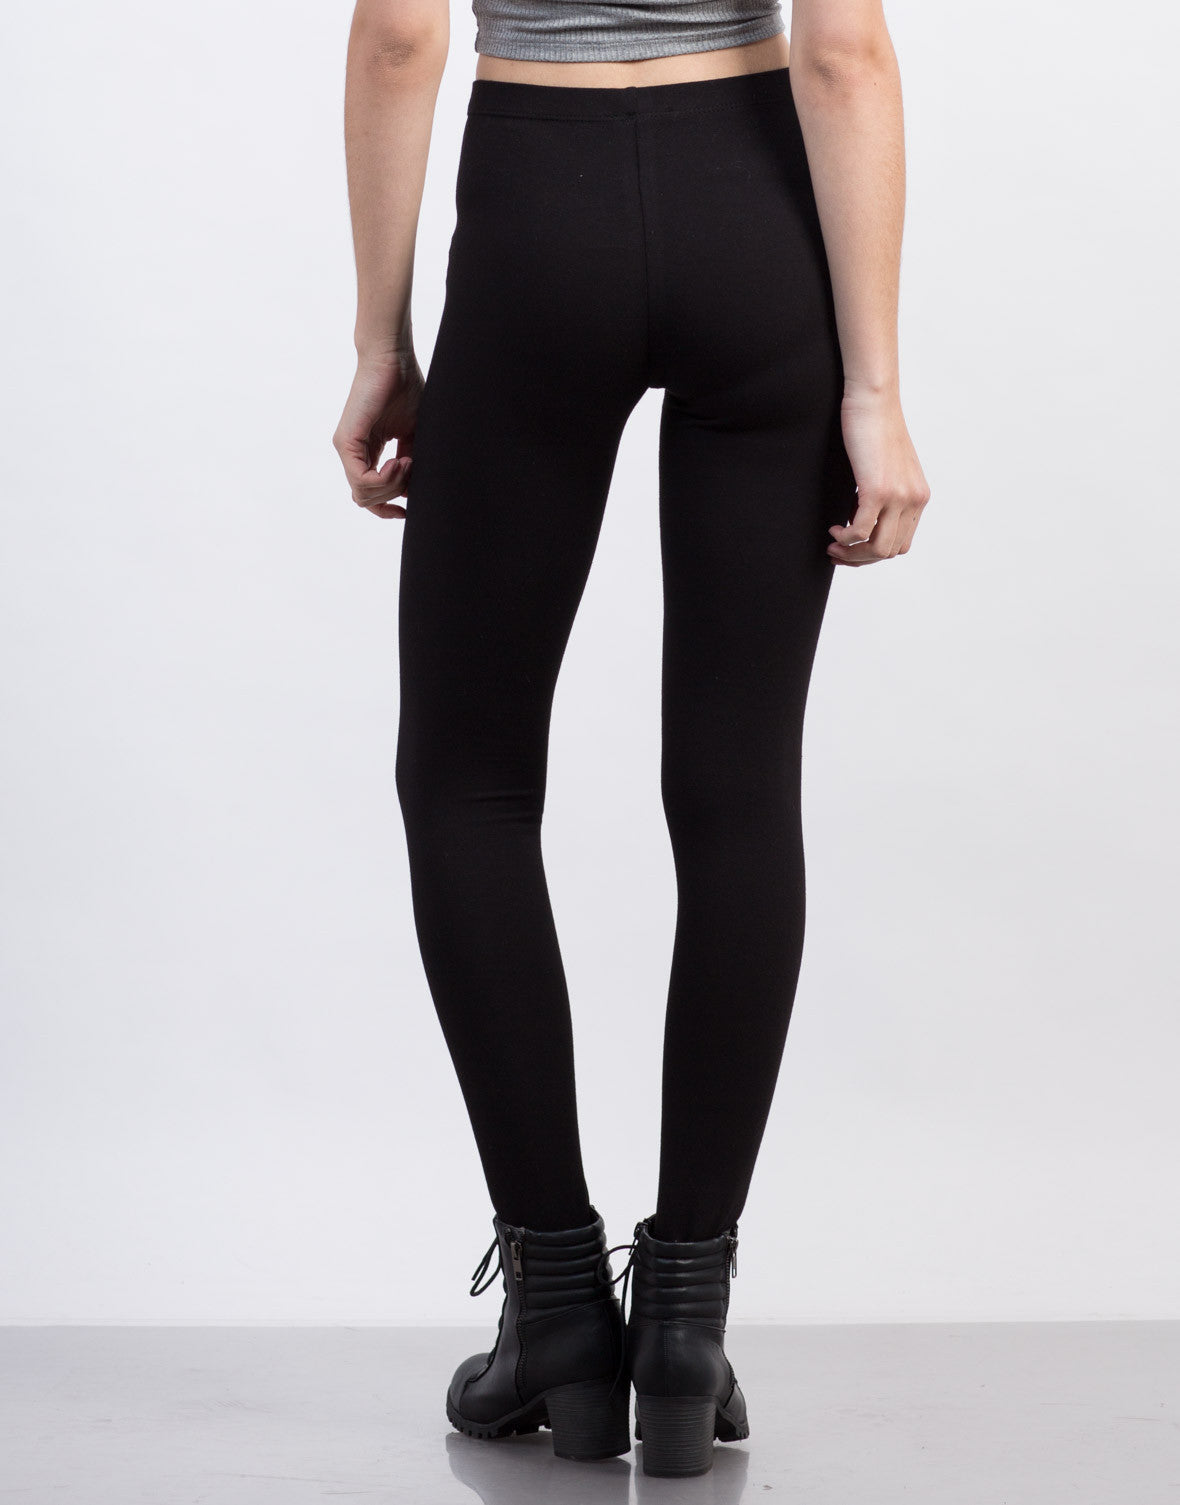 Back View of Stirrup Leggings